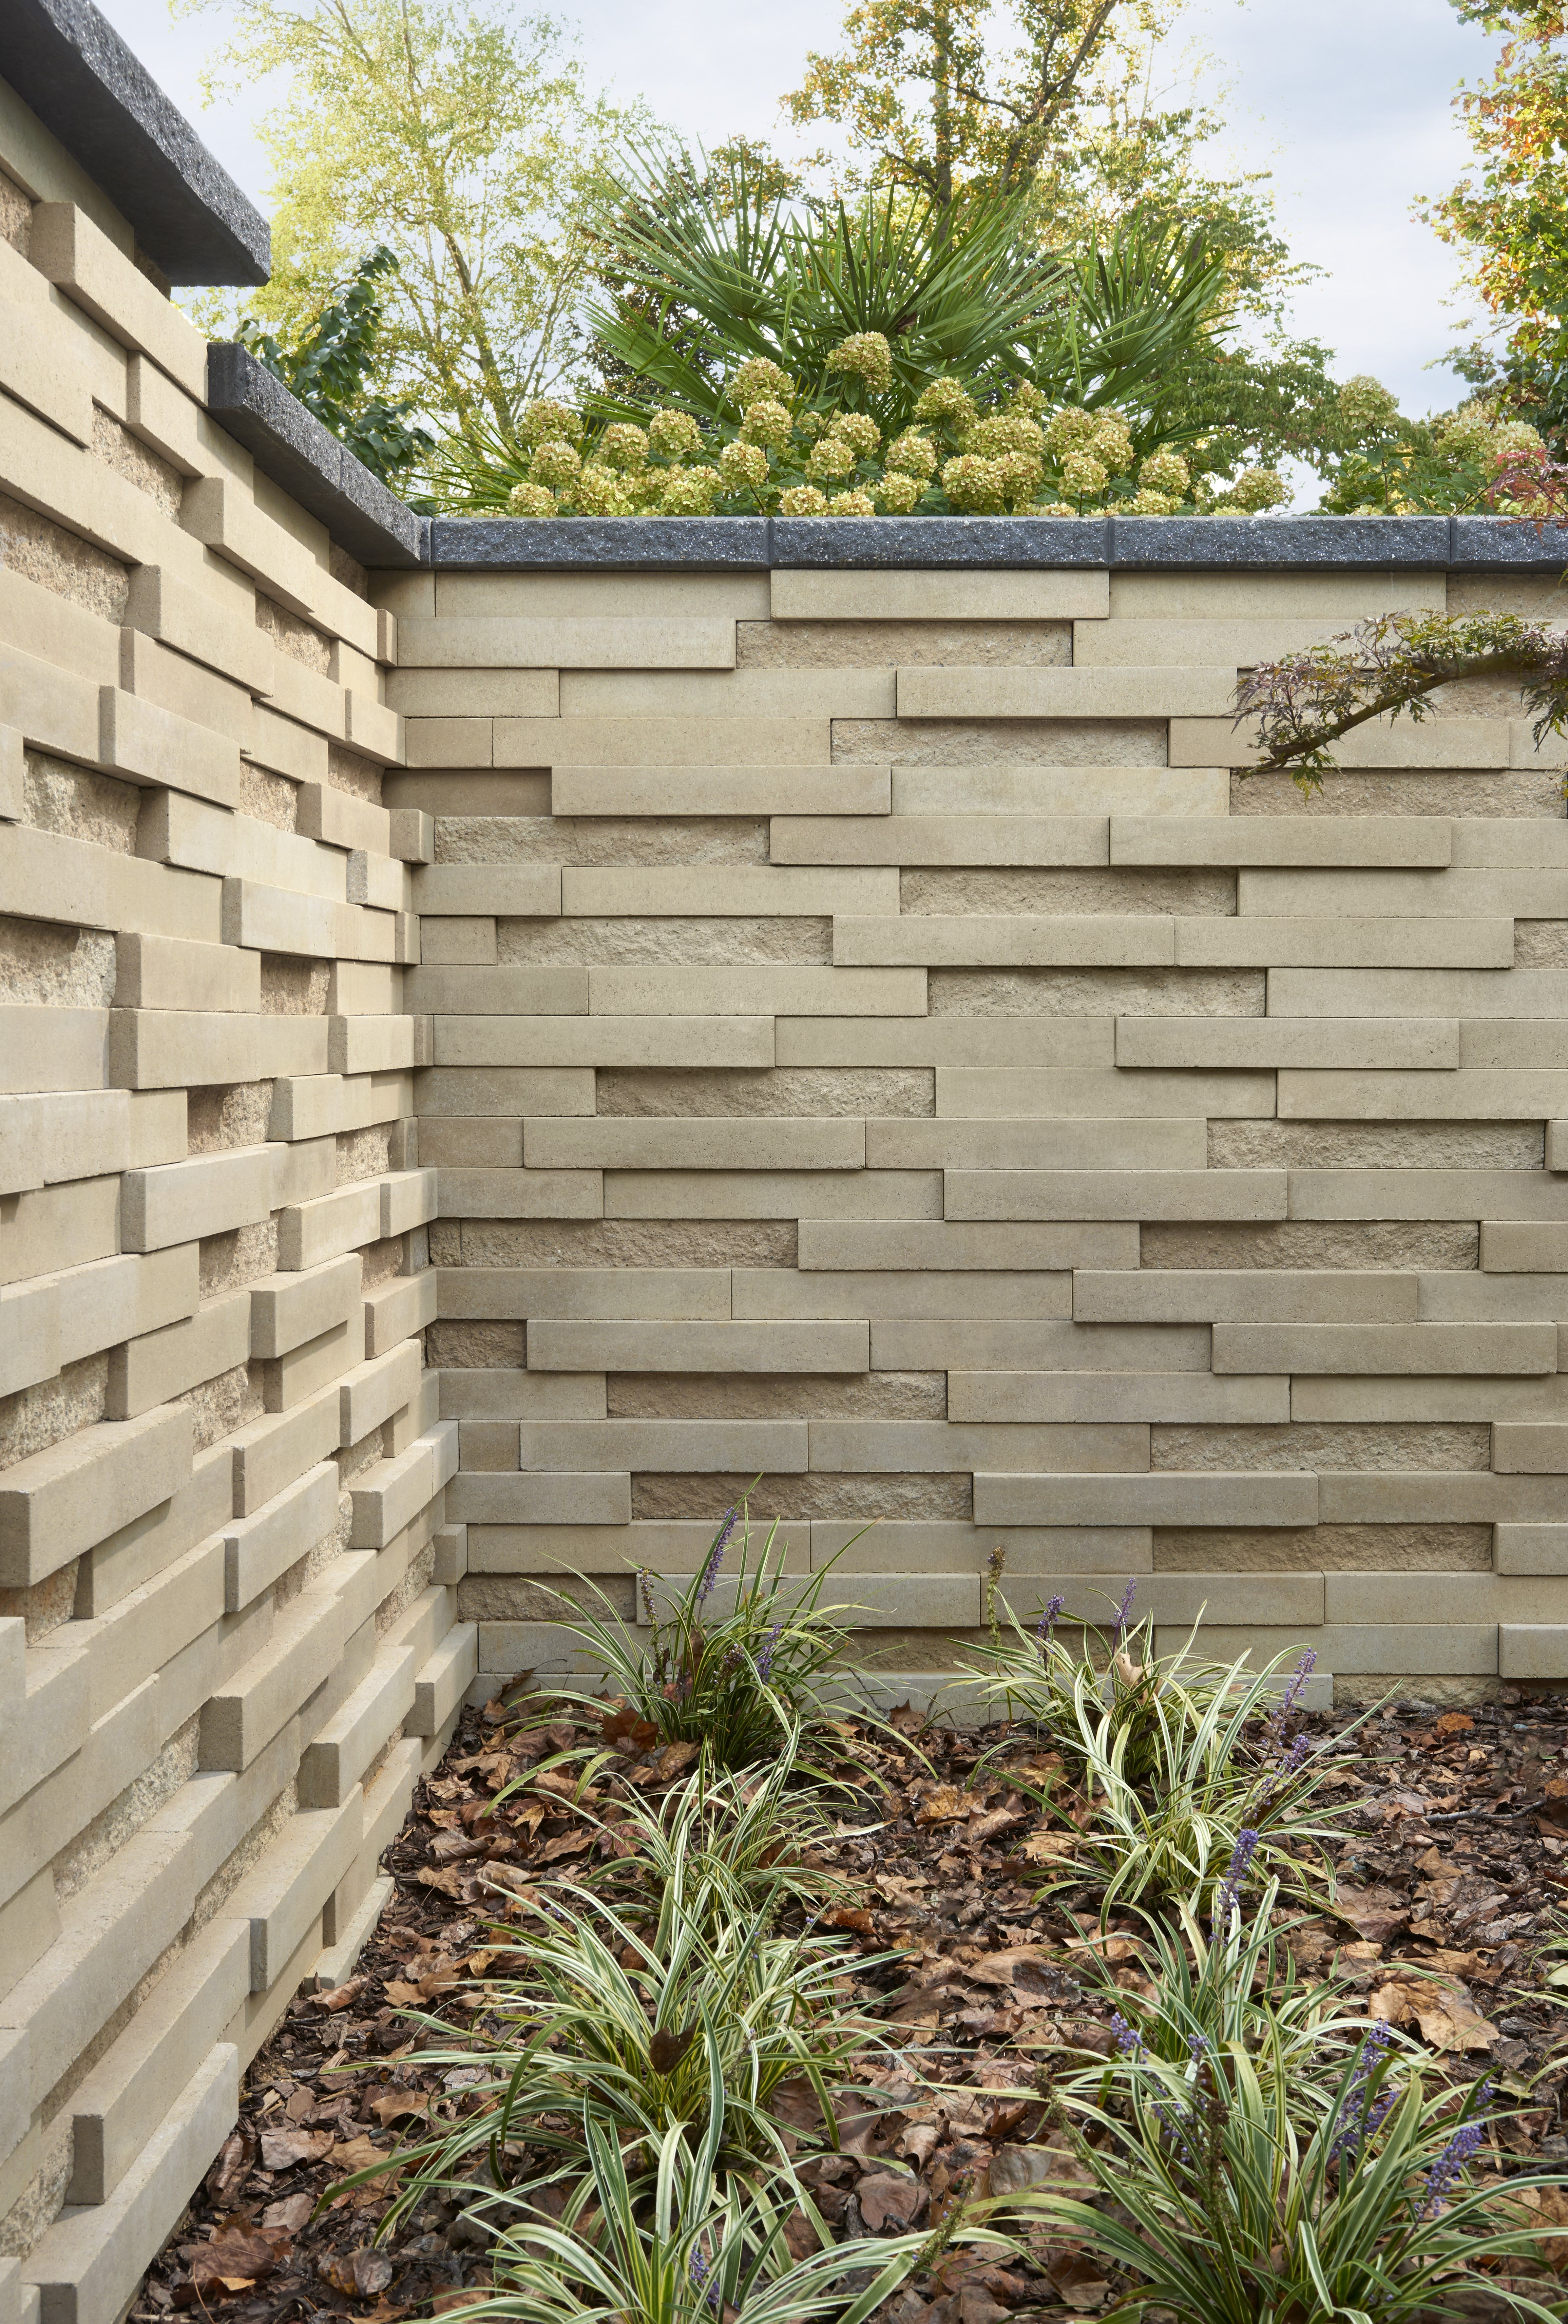 This Backyard Landscape Design Is Inspired By Our Graphix Wall